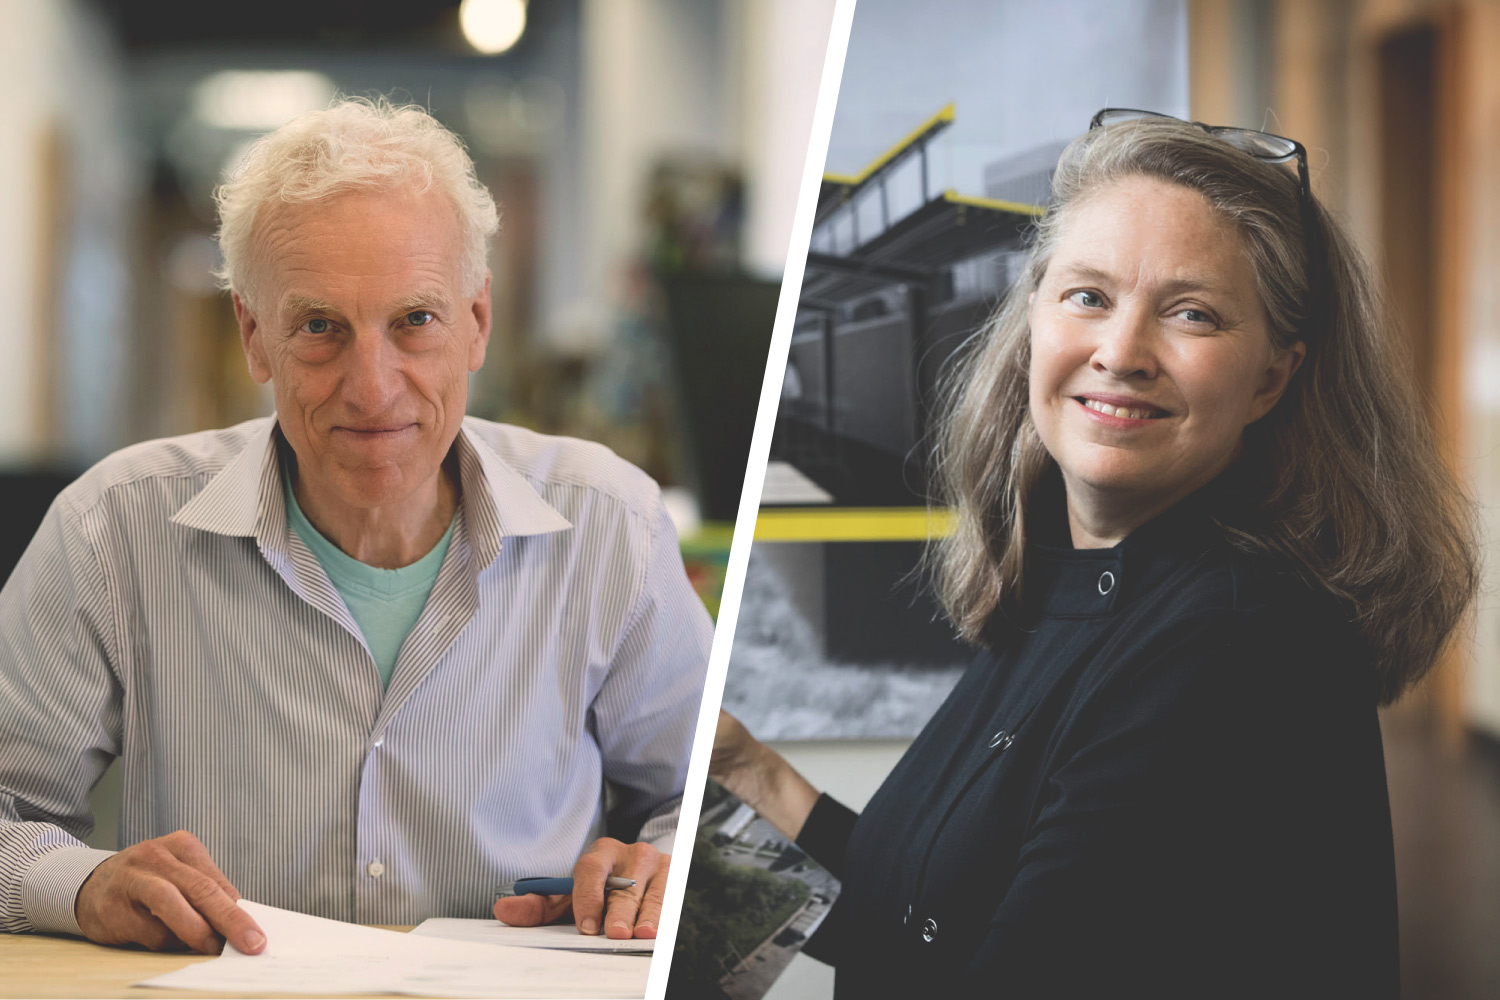 Architecture faculty members Alex Wall, left, and Phoebe Crisman, right, are leading research teams helping communities in the Hampton Roads area address and prepare for sea-level rise.